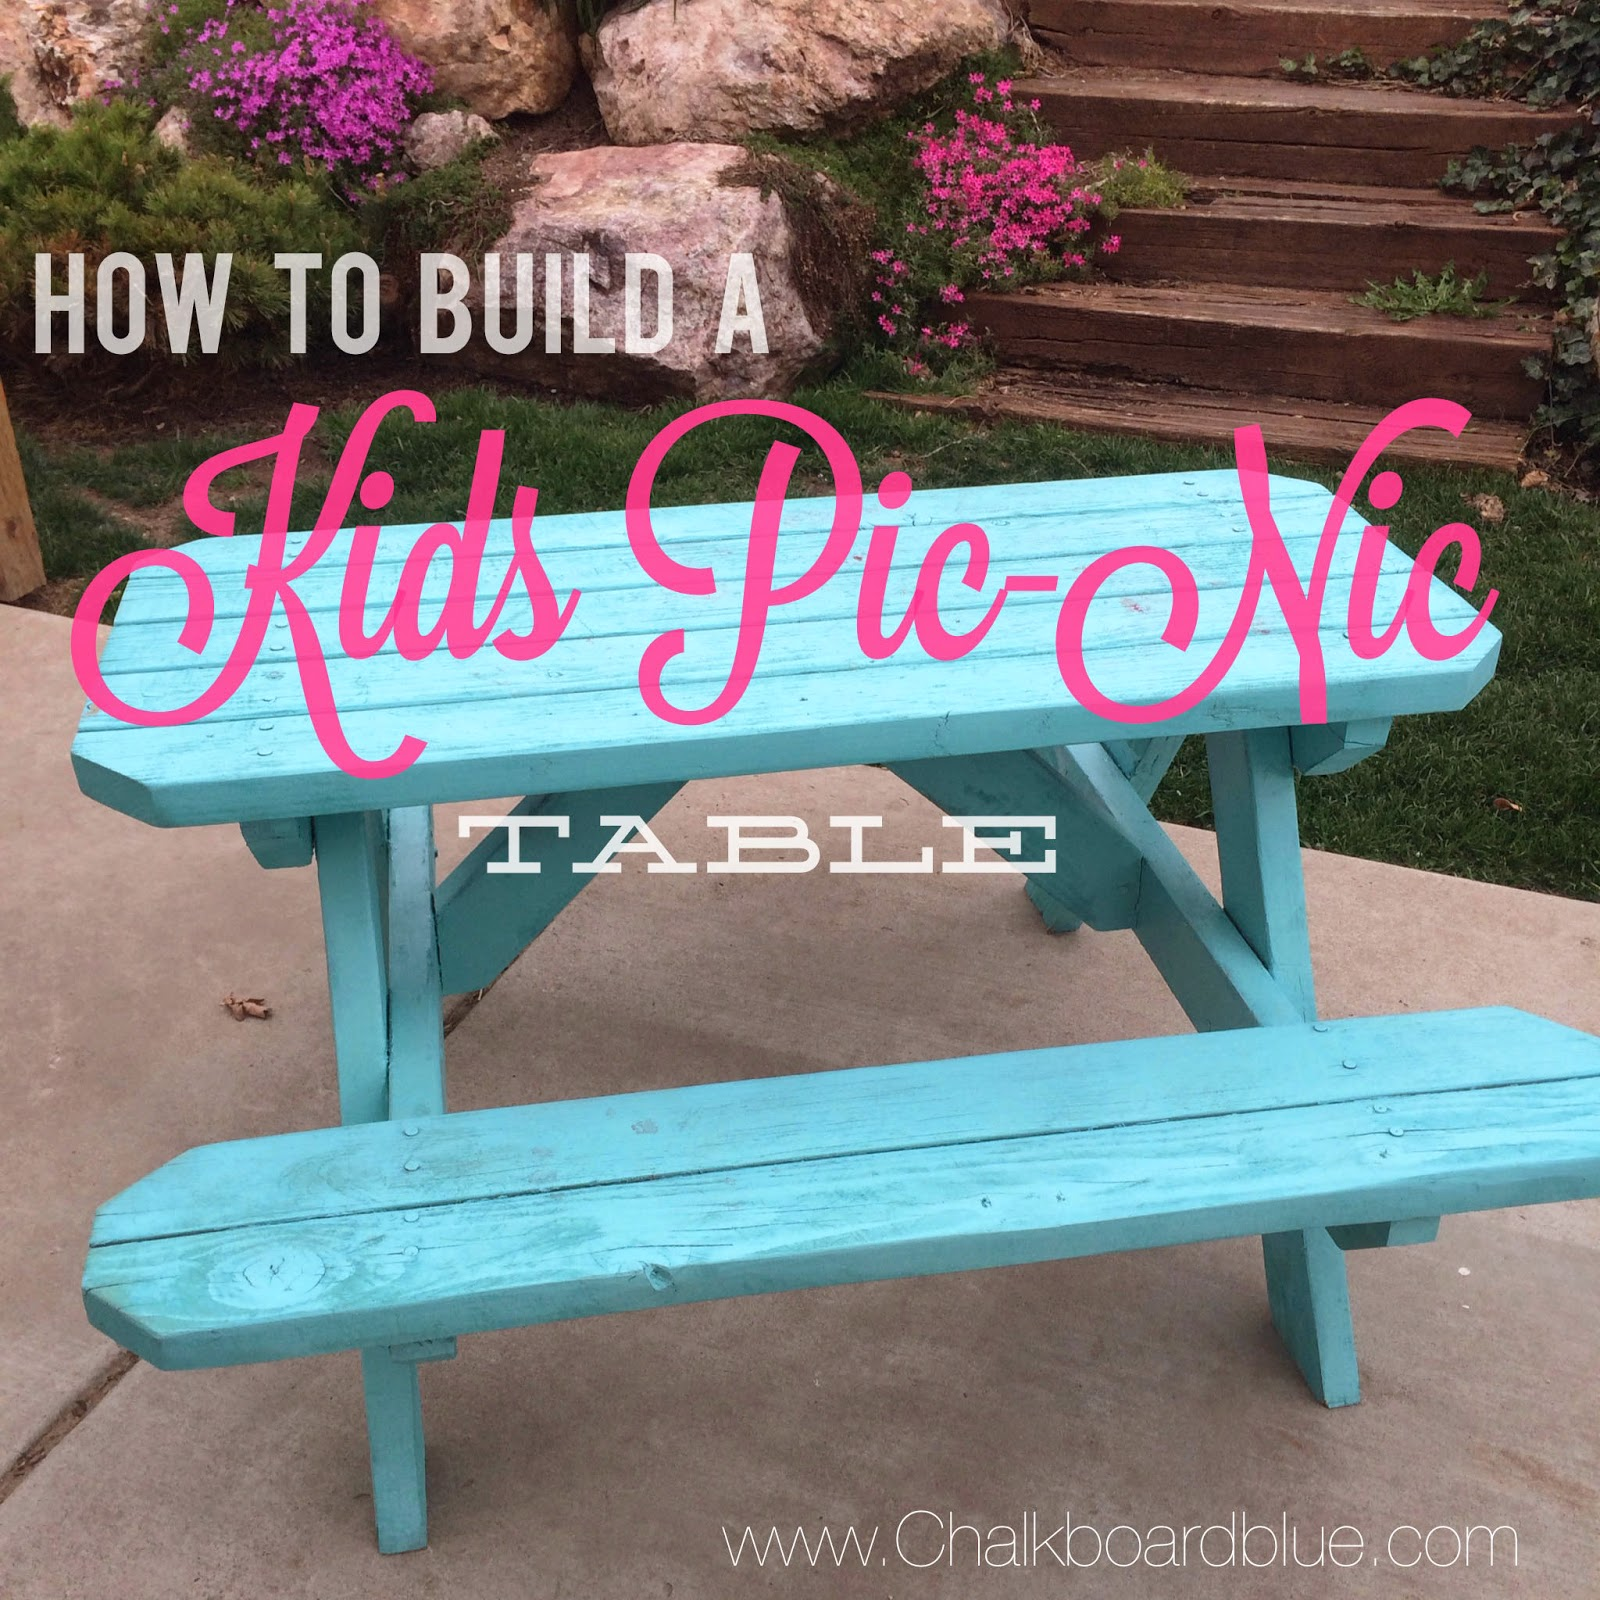 Chalkboard Blue How to Build a Kids Pic Nic Table